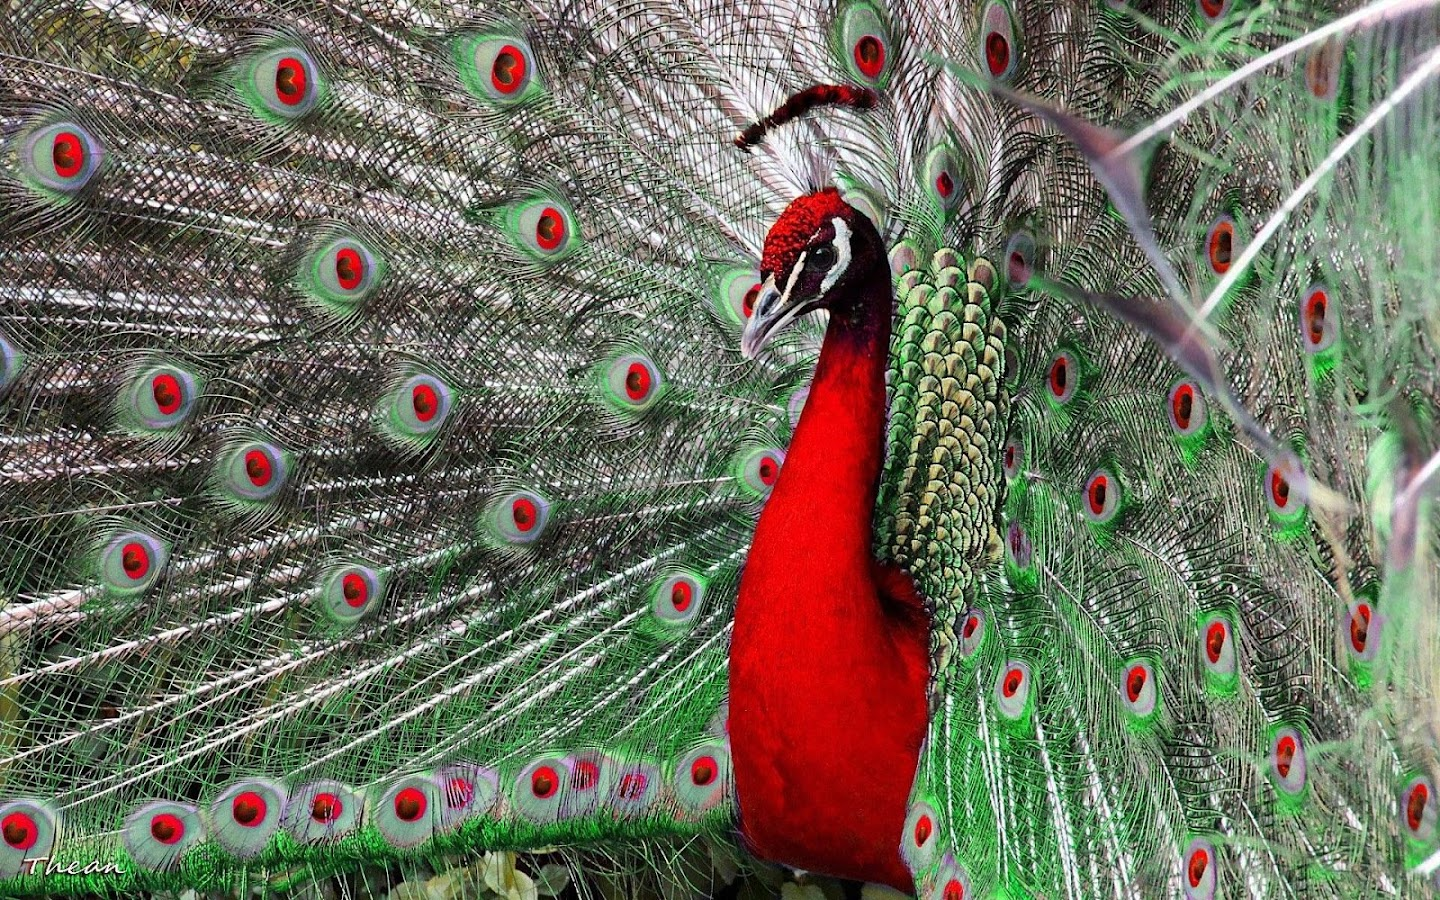 peacock live wallpaper pictures of peacocks android apps on